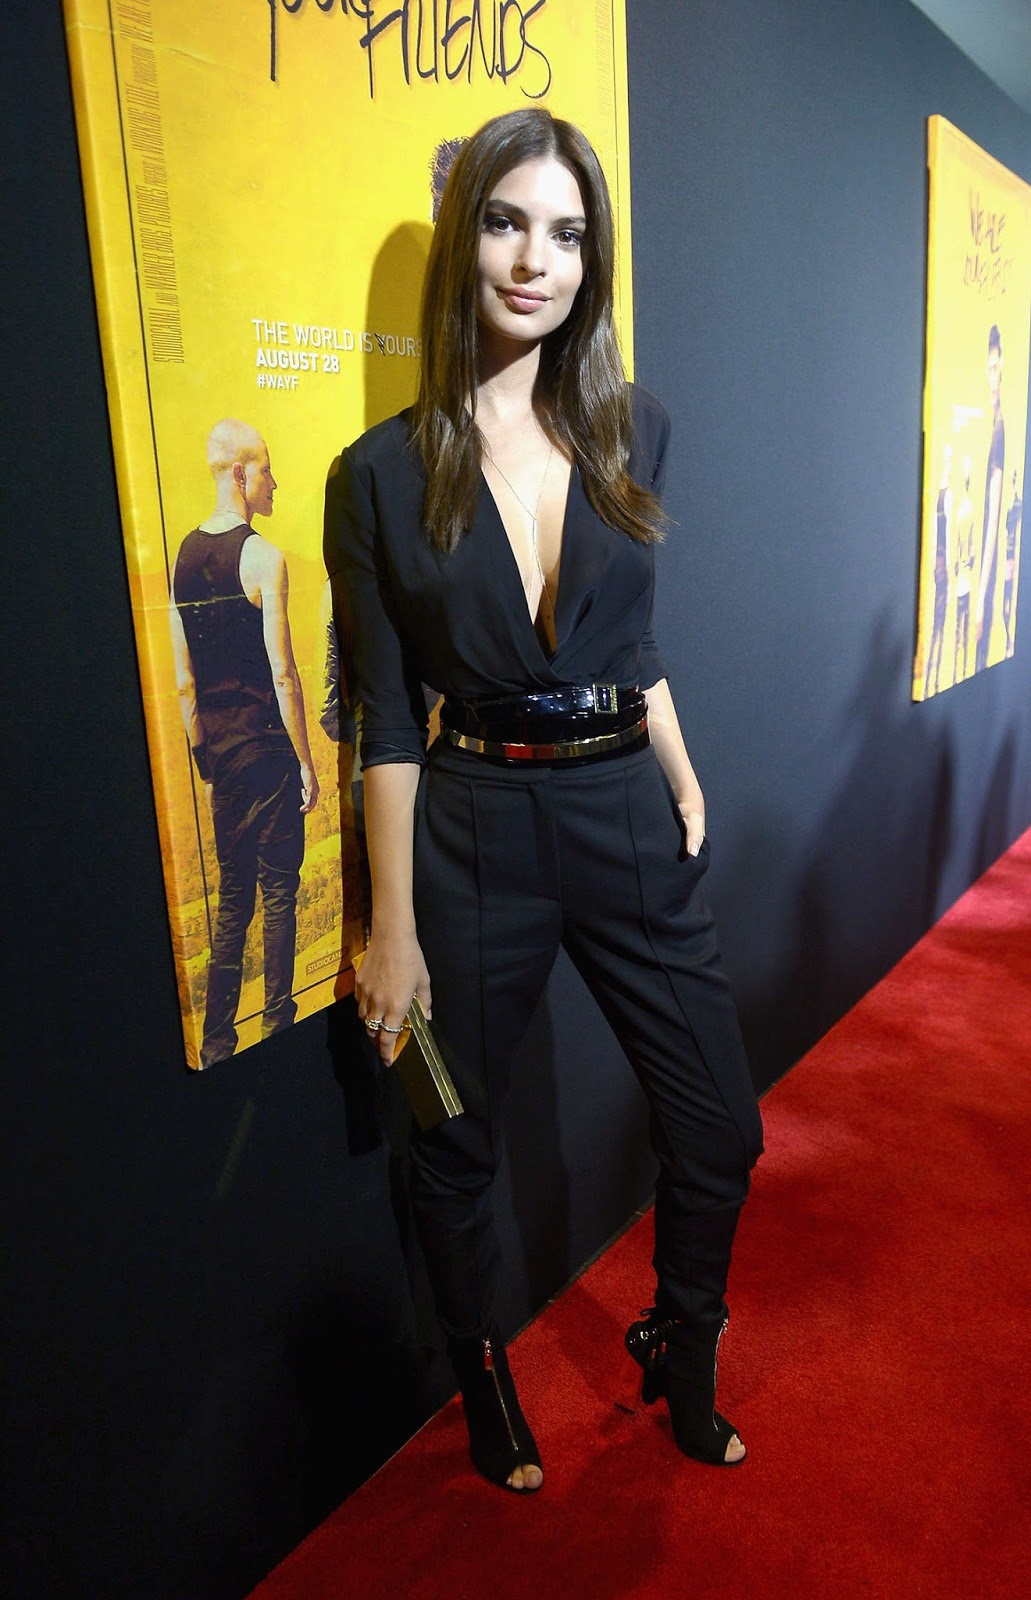 Emily Ratajkowski flaunts side-boob in plunging black jumpsuit at We Are Your Friends premiere